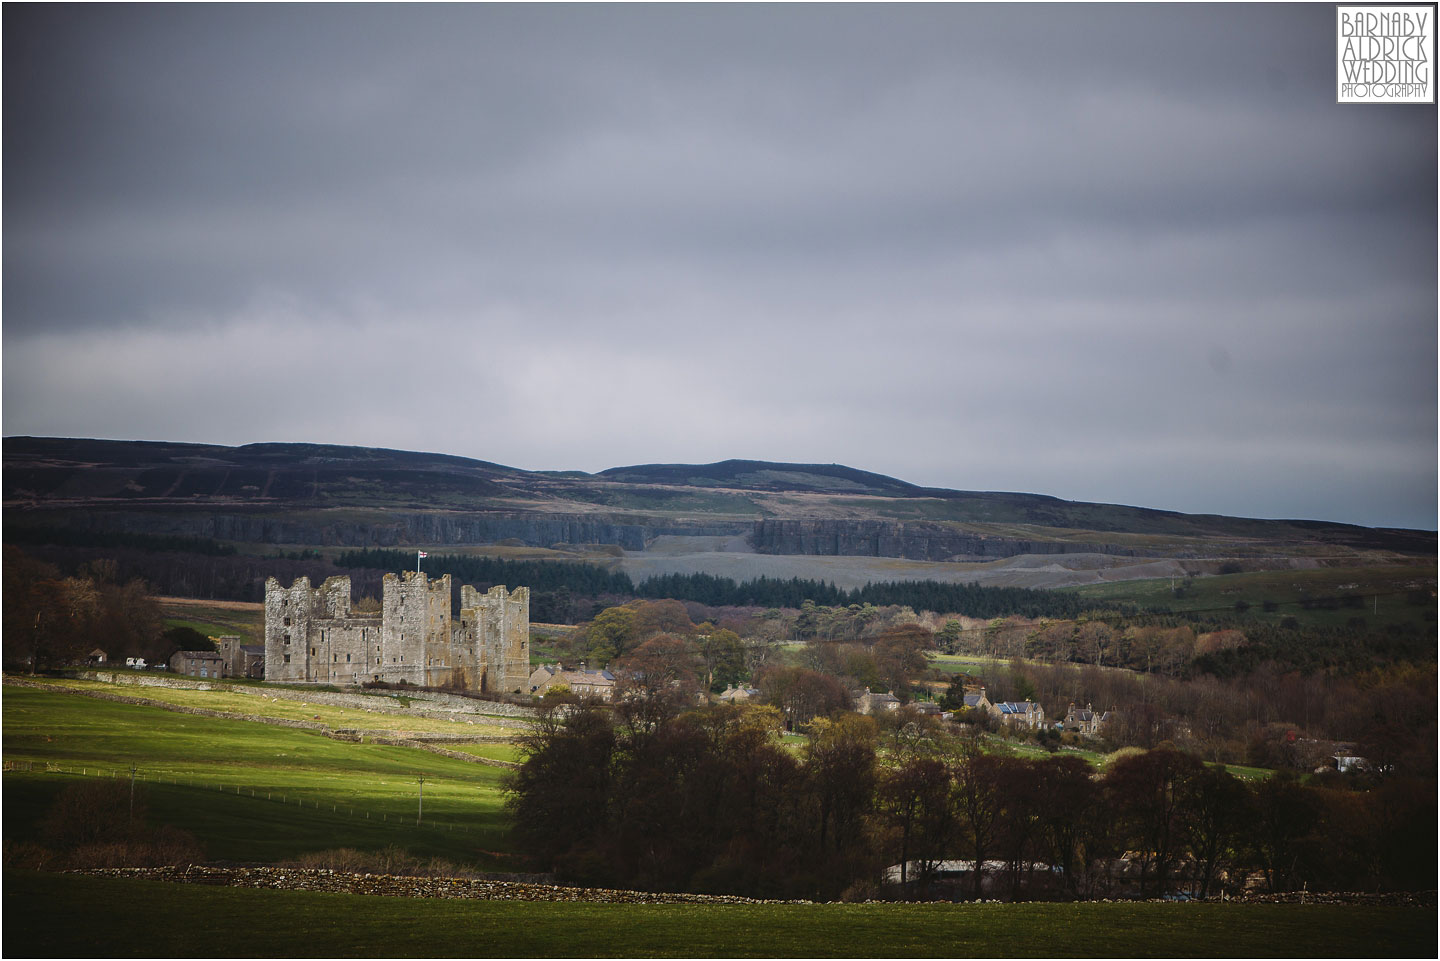 Castle Bolton, Yorkshire Dales Wedding Venue, Best wedding venues in Yorkshire